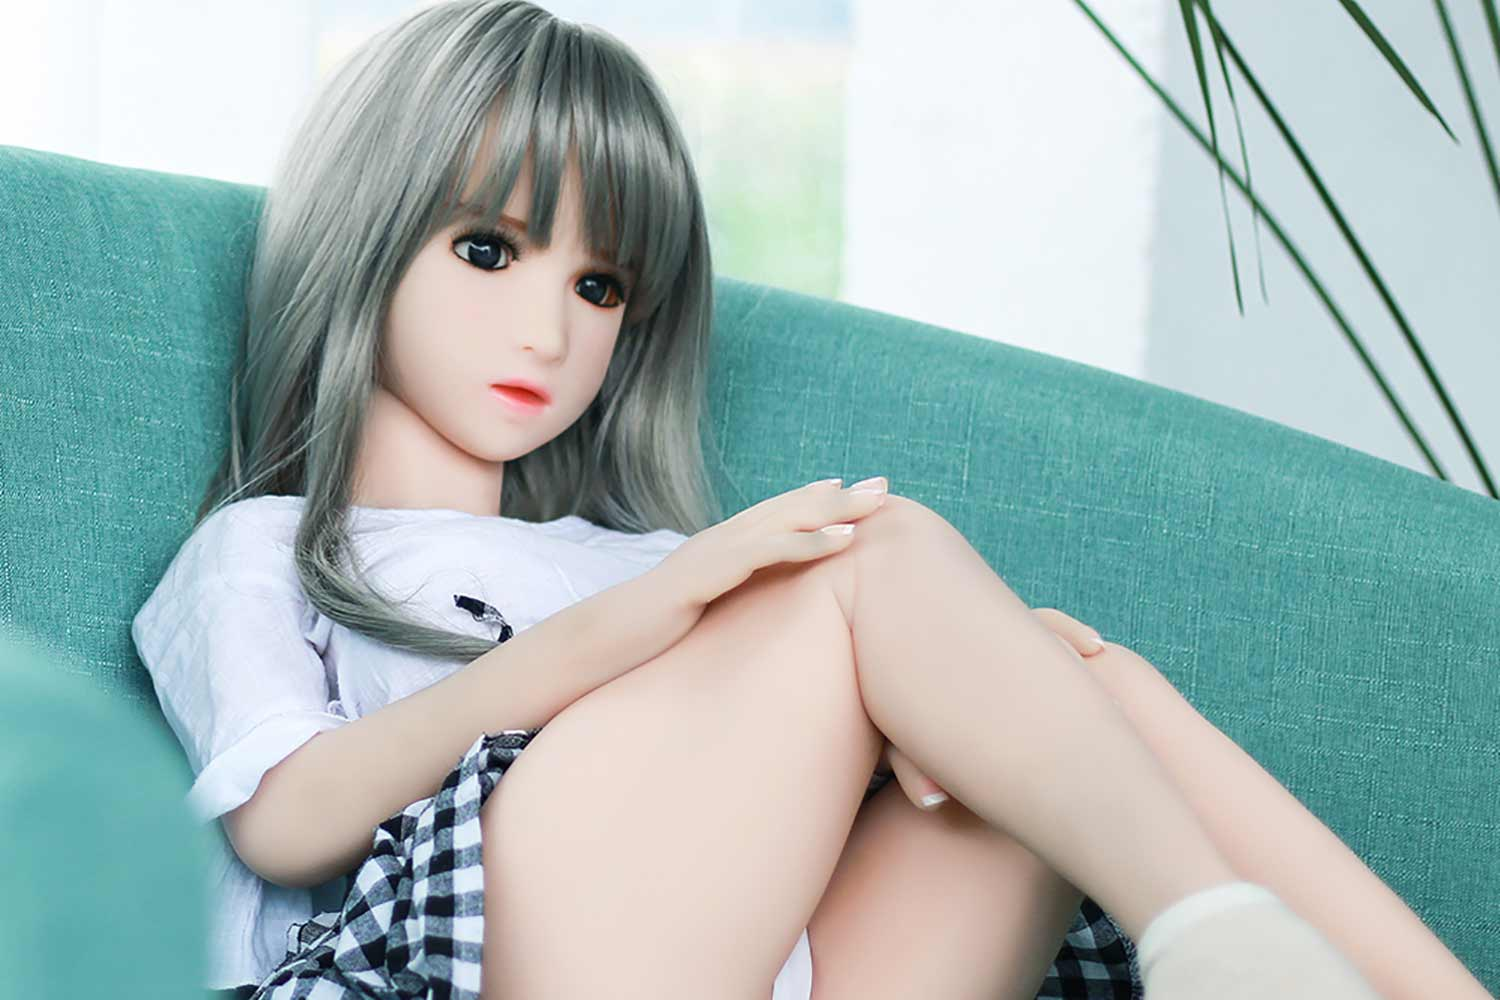 Mini sex doll with hand on thigh